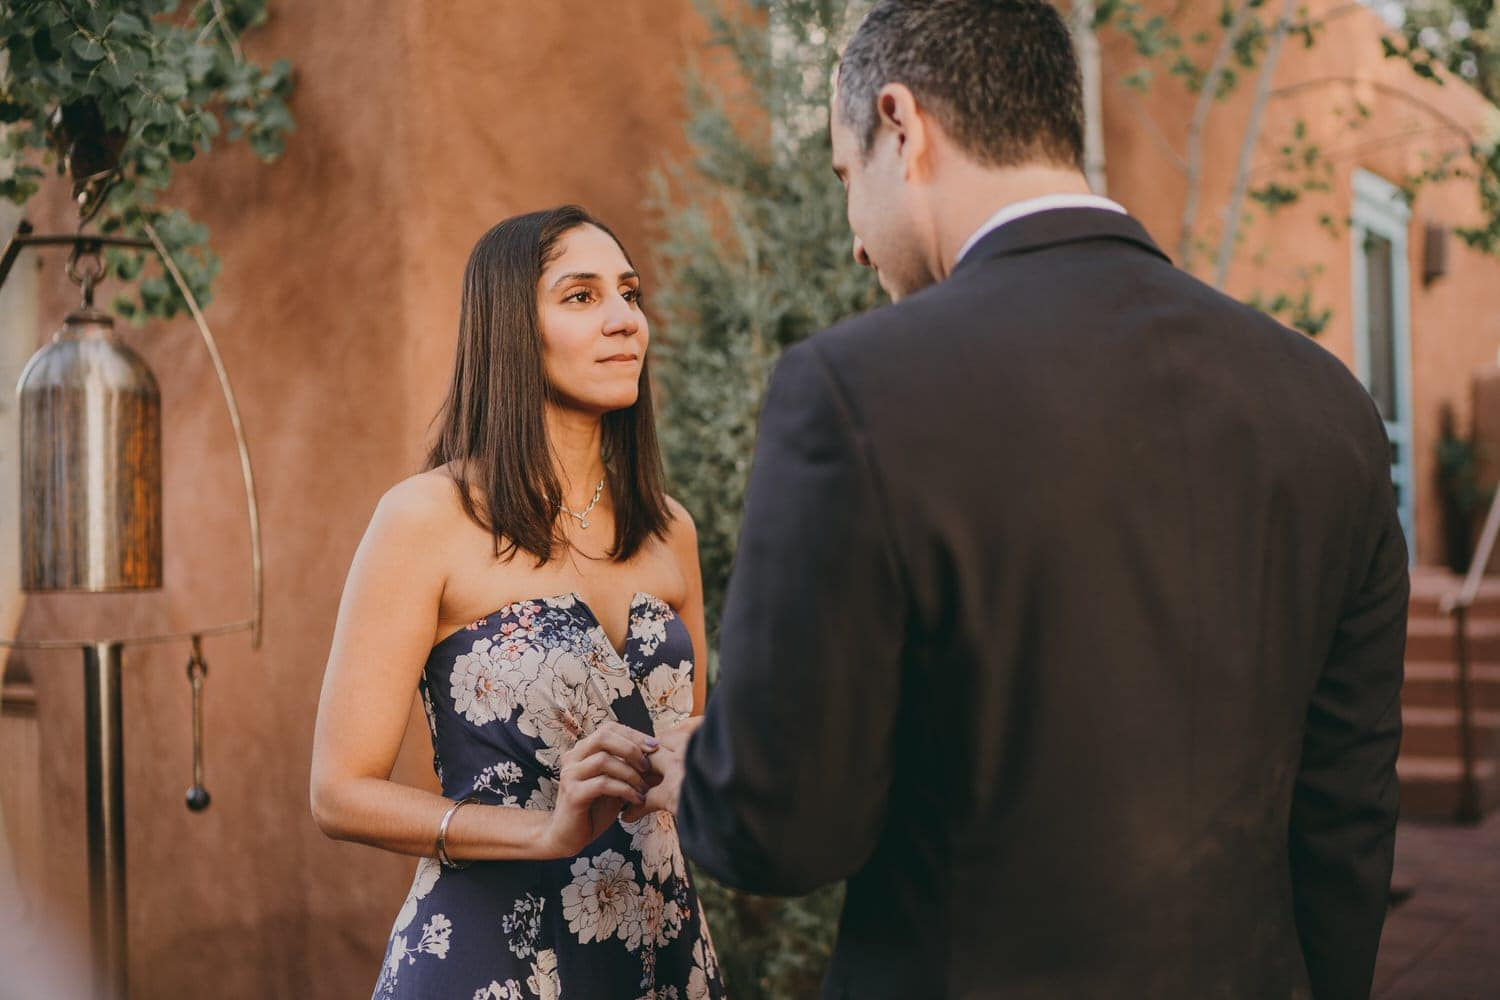 Bride starring into her groom's eyes as she places the ring on his finger